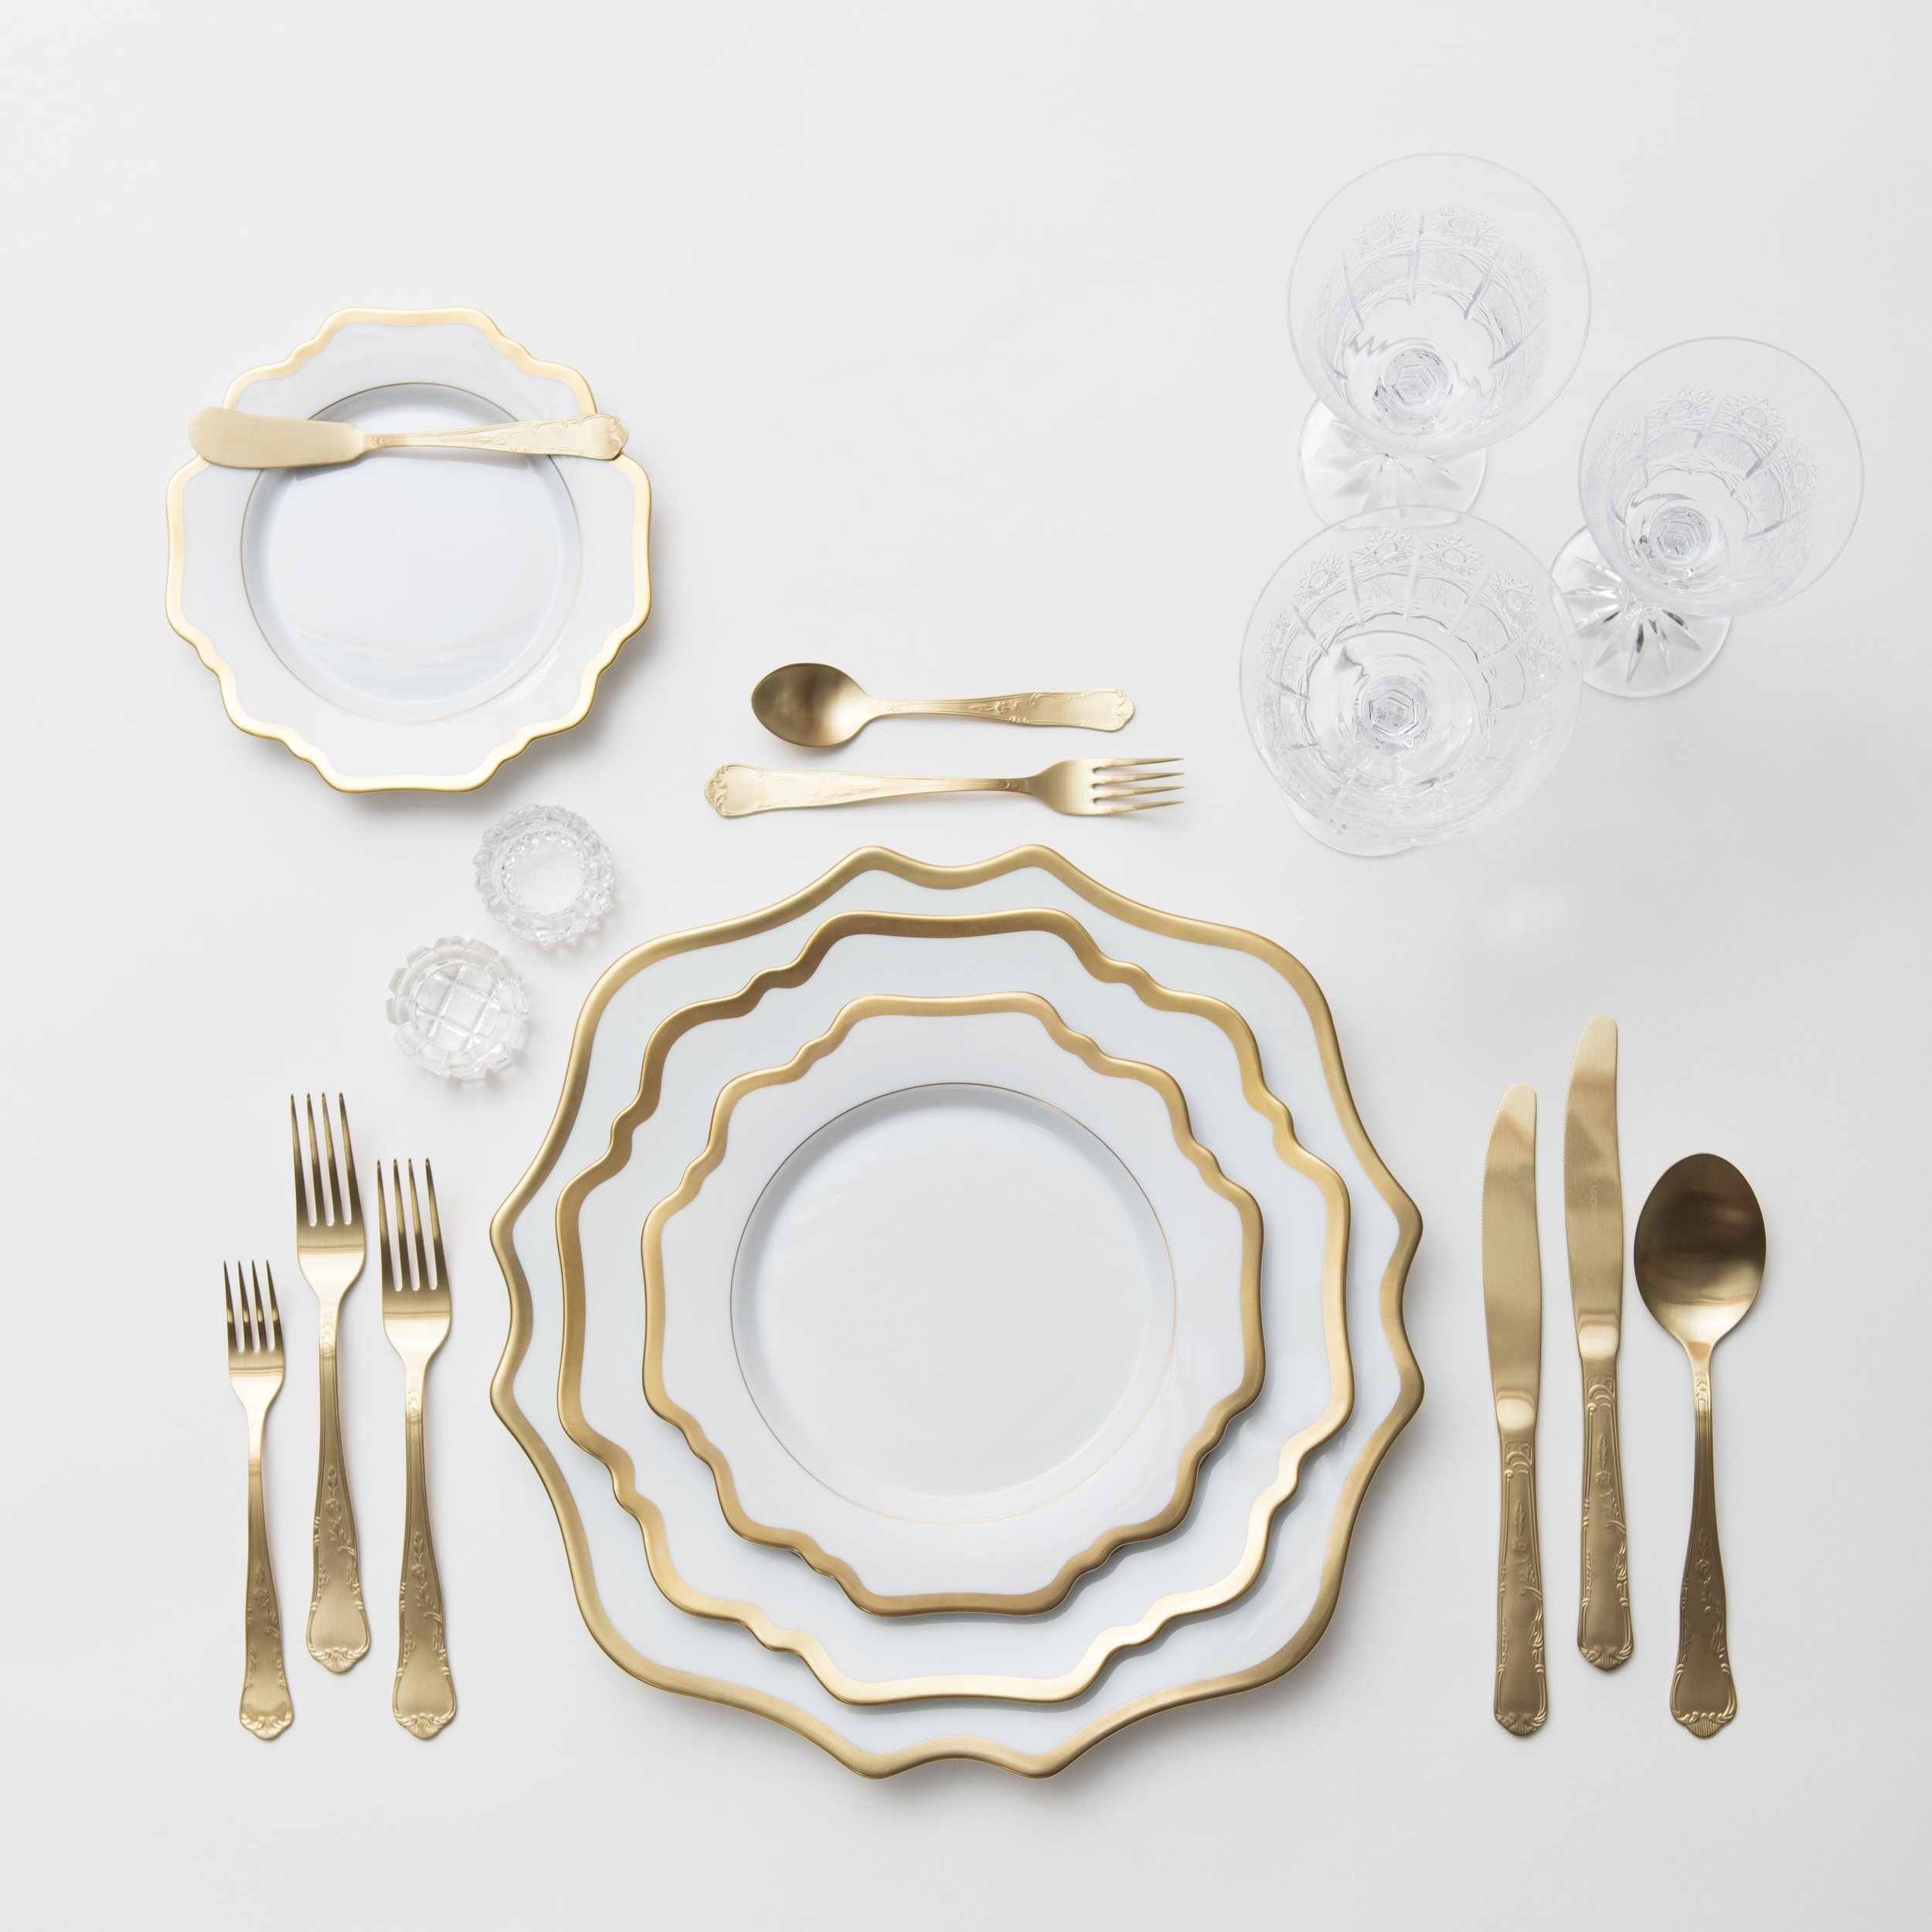 RENT: Anna Weatherley Chargers/Dinnerware in White/Gold + Chateau Flatware in Matte Gold + Czech Crystal Stemware +Antique Crystal Salt Cellars  SHOP: Anna Weatherley Chargers/Dinnerware in White/Gold